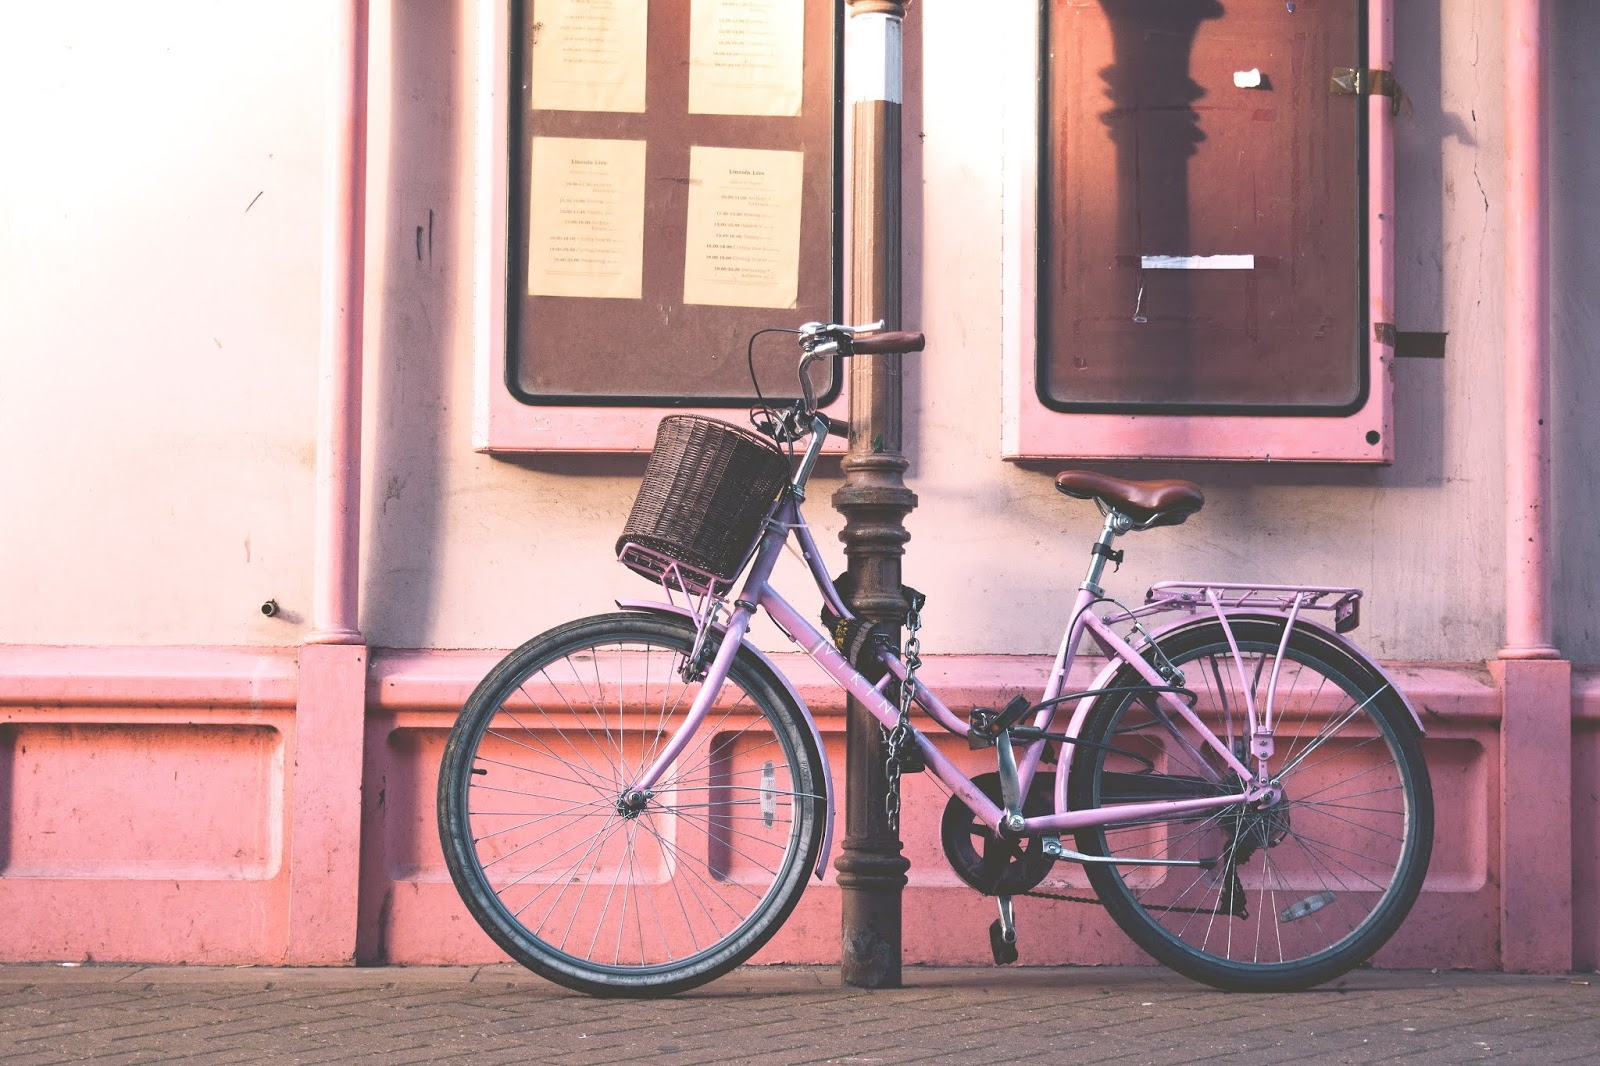 hd wallpapers bicycles - backgrounds pic